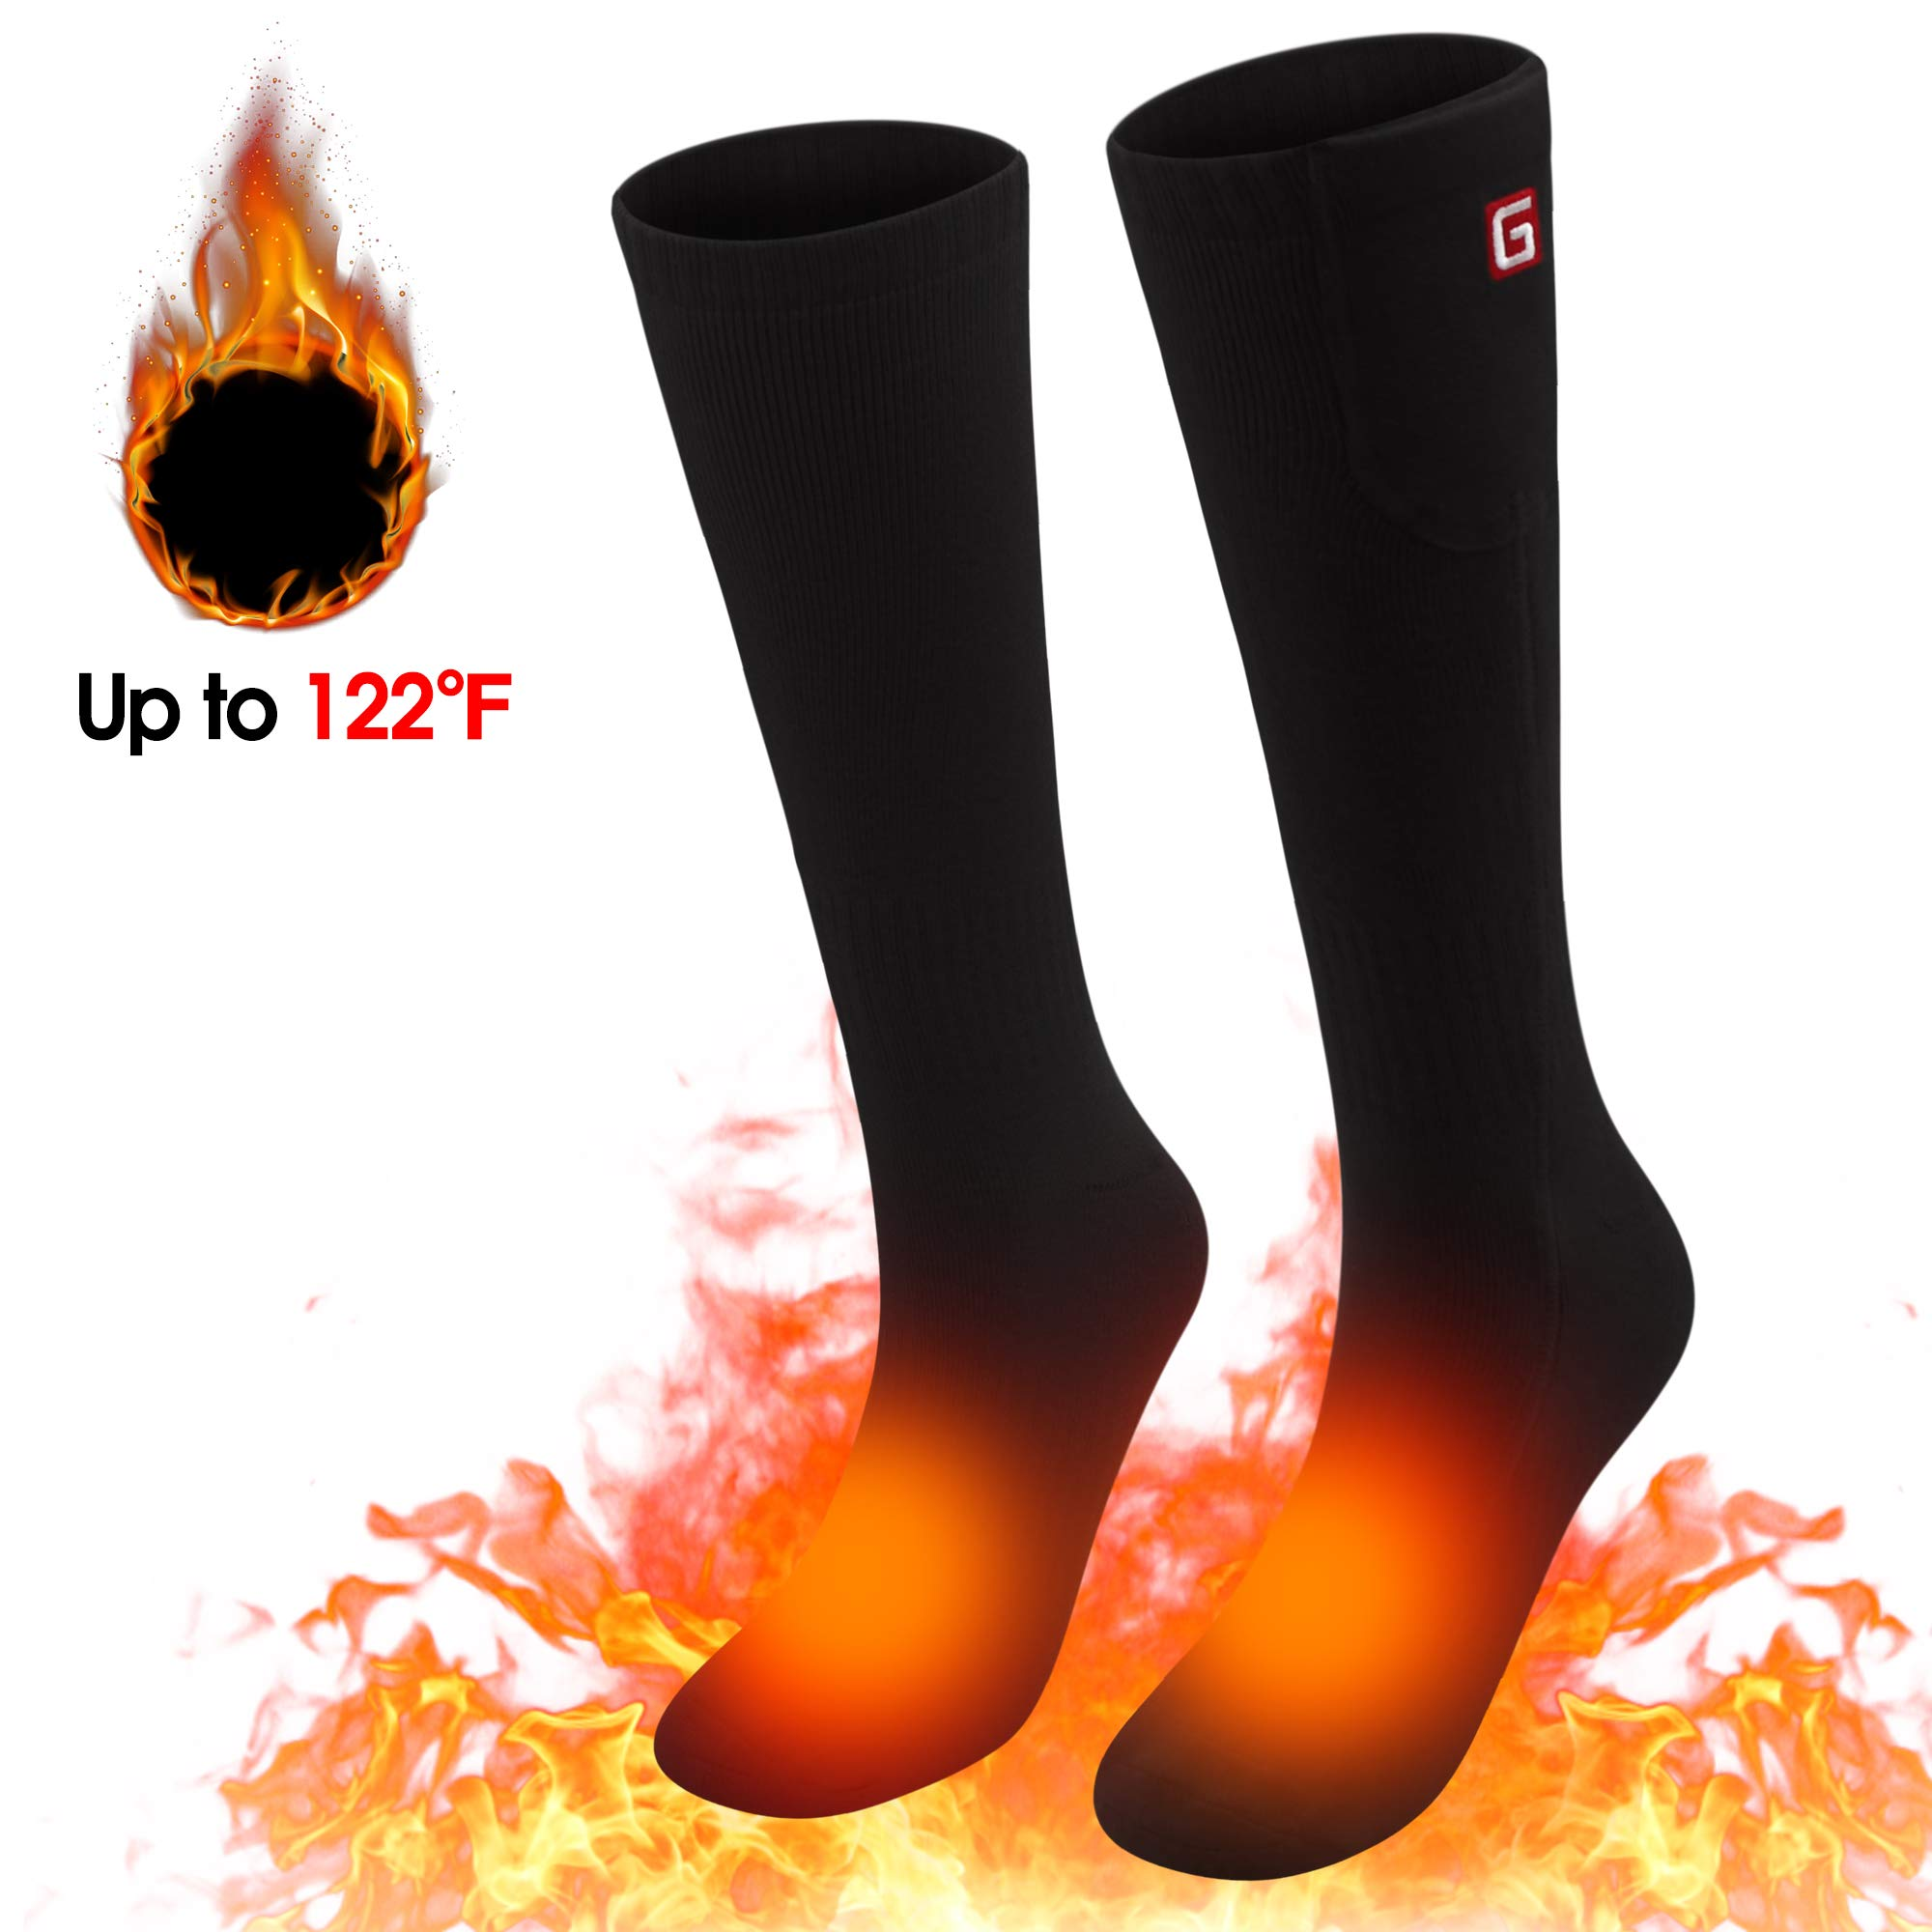 Spring Electric Rechargeable Battery Heating Socks for Men Women,Winter Ski Hunting Camping Hiking Climbing Riding Motorcycle Warm Feet Warmers Socks